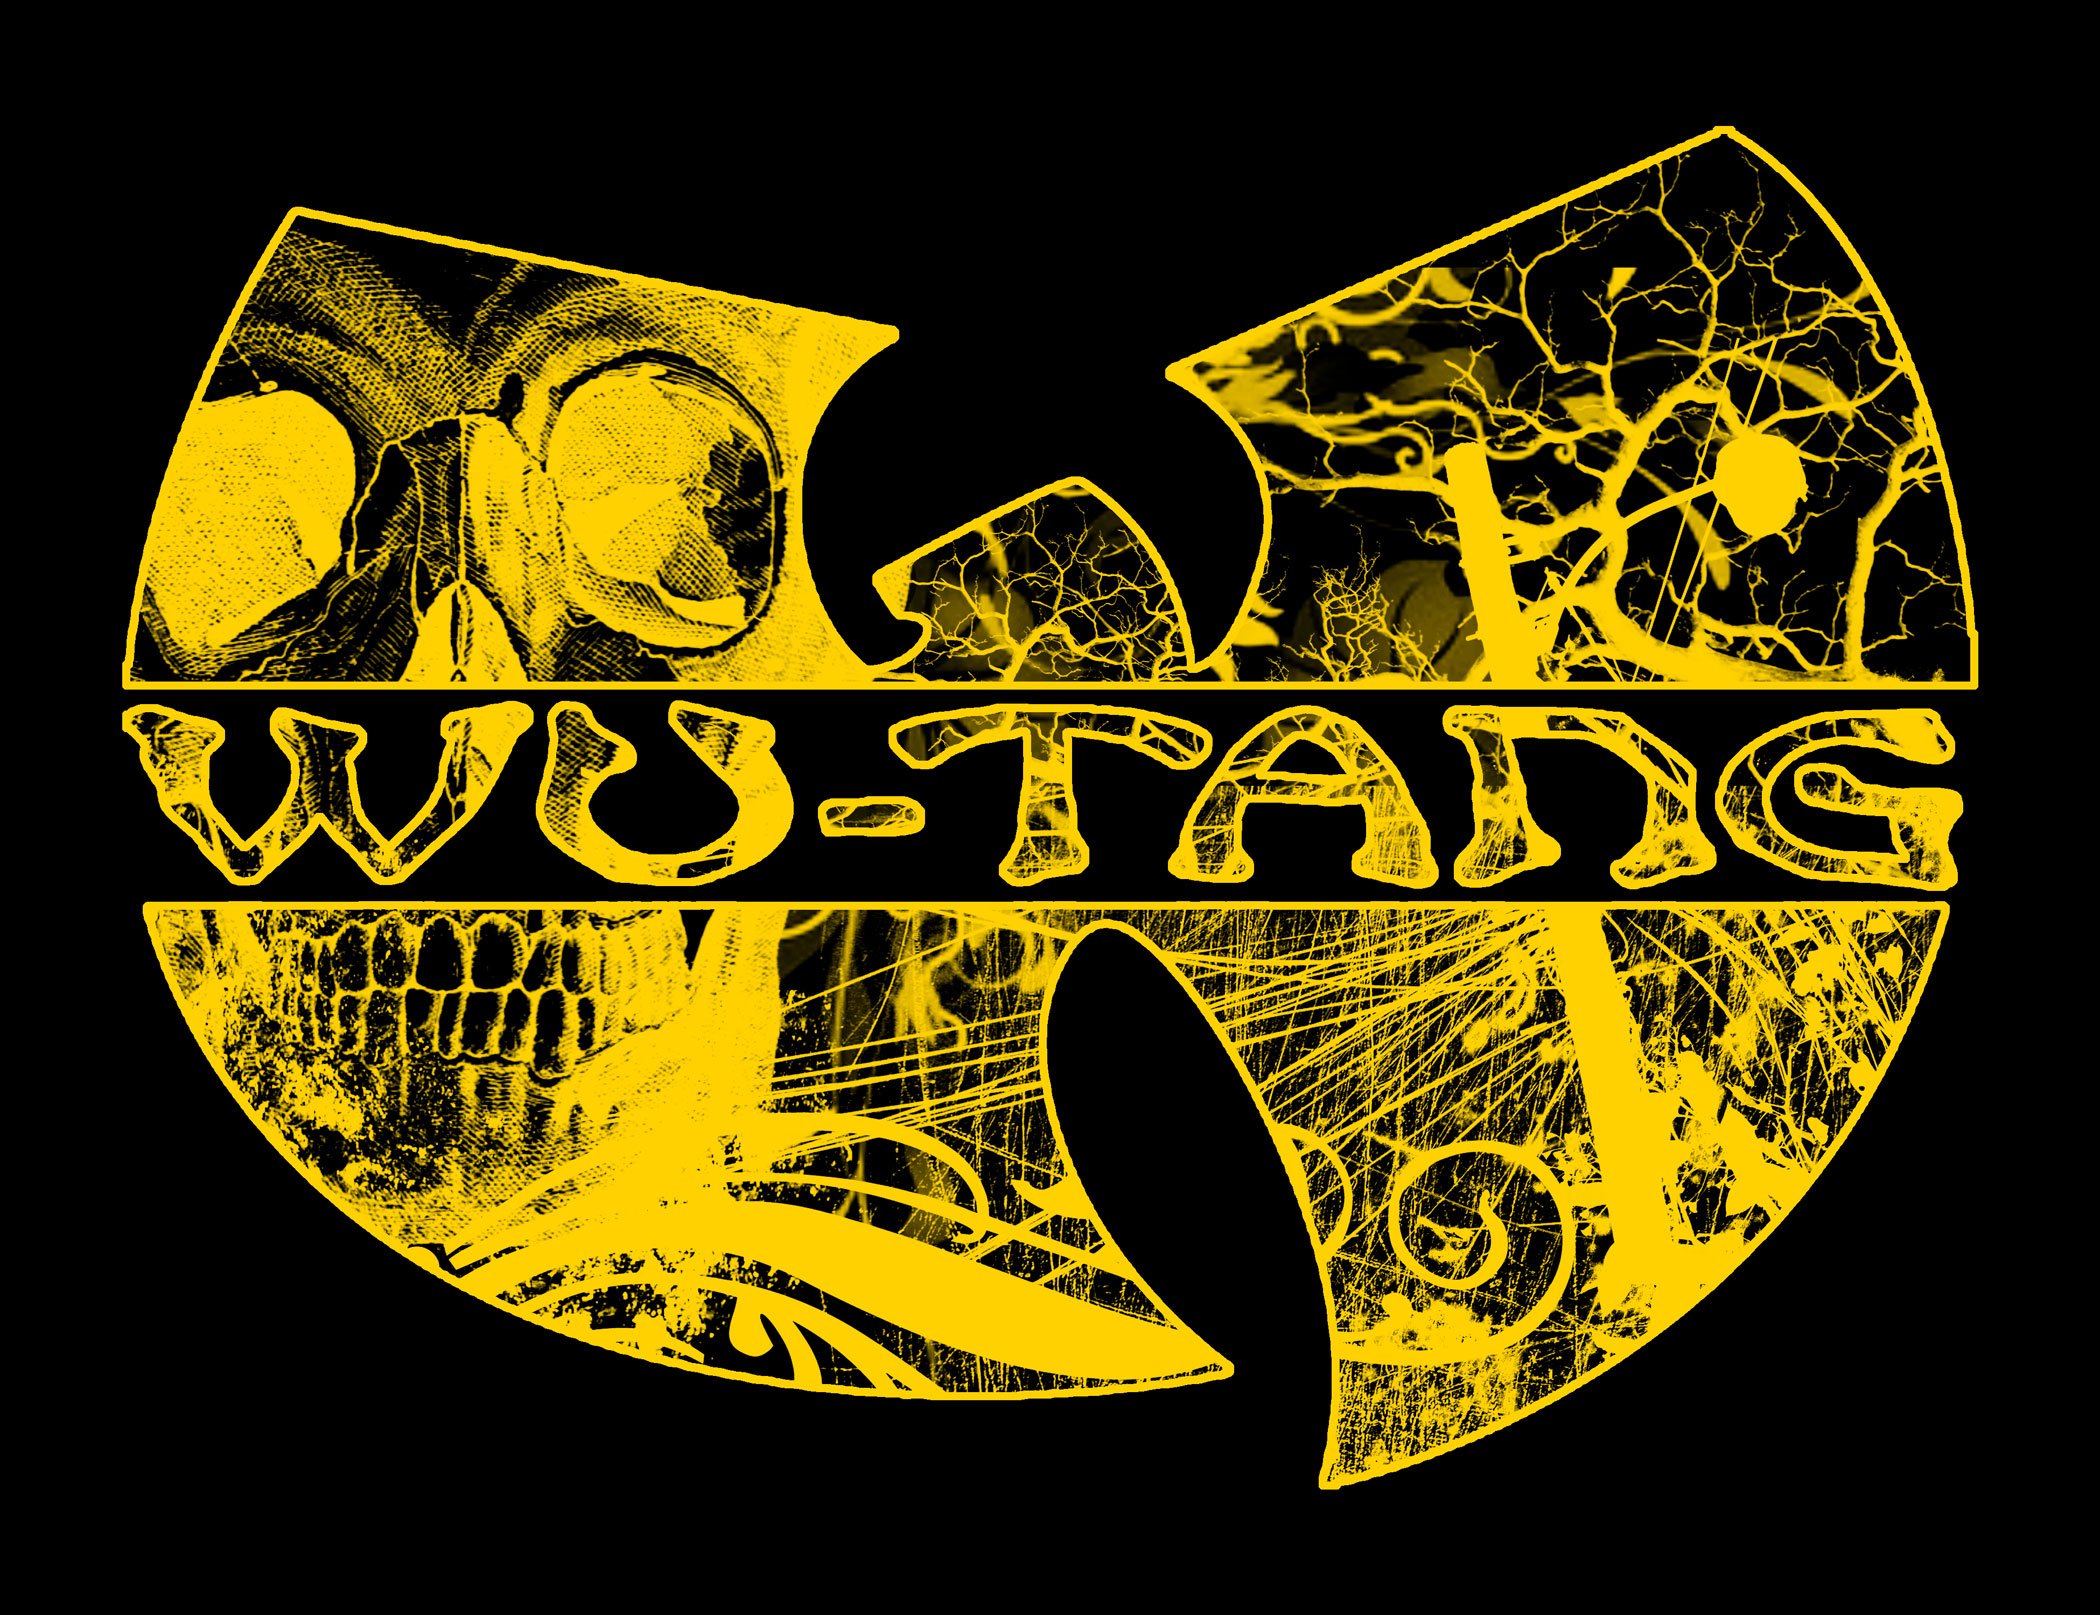 Wu-Tang Clan Full HD Wallpaper And Background Image